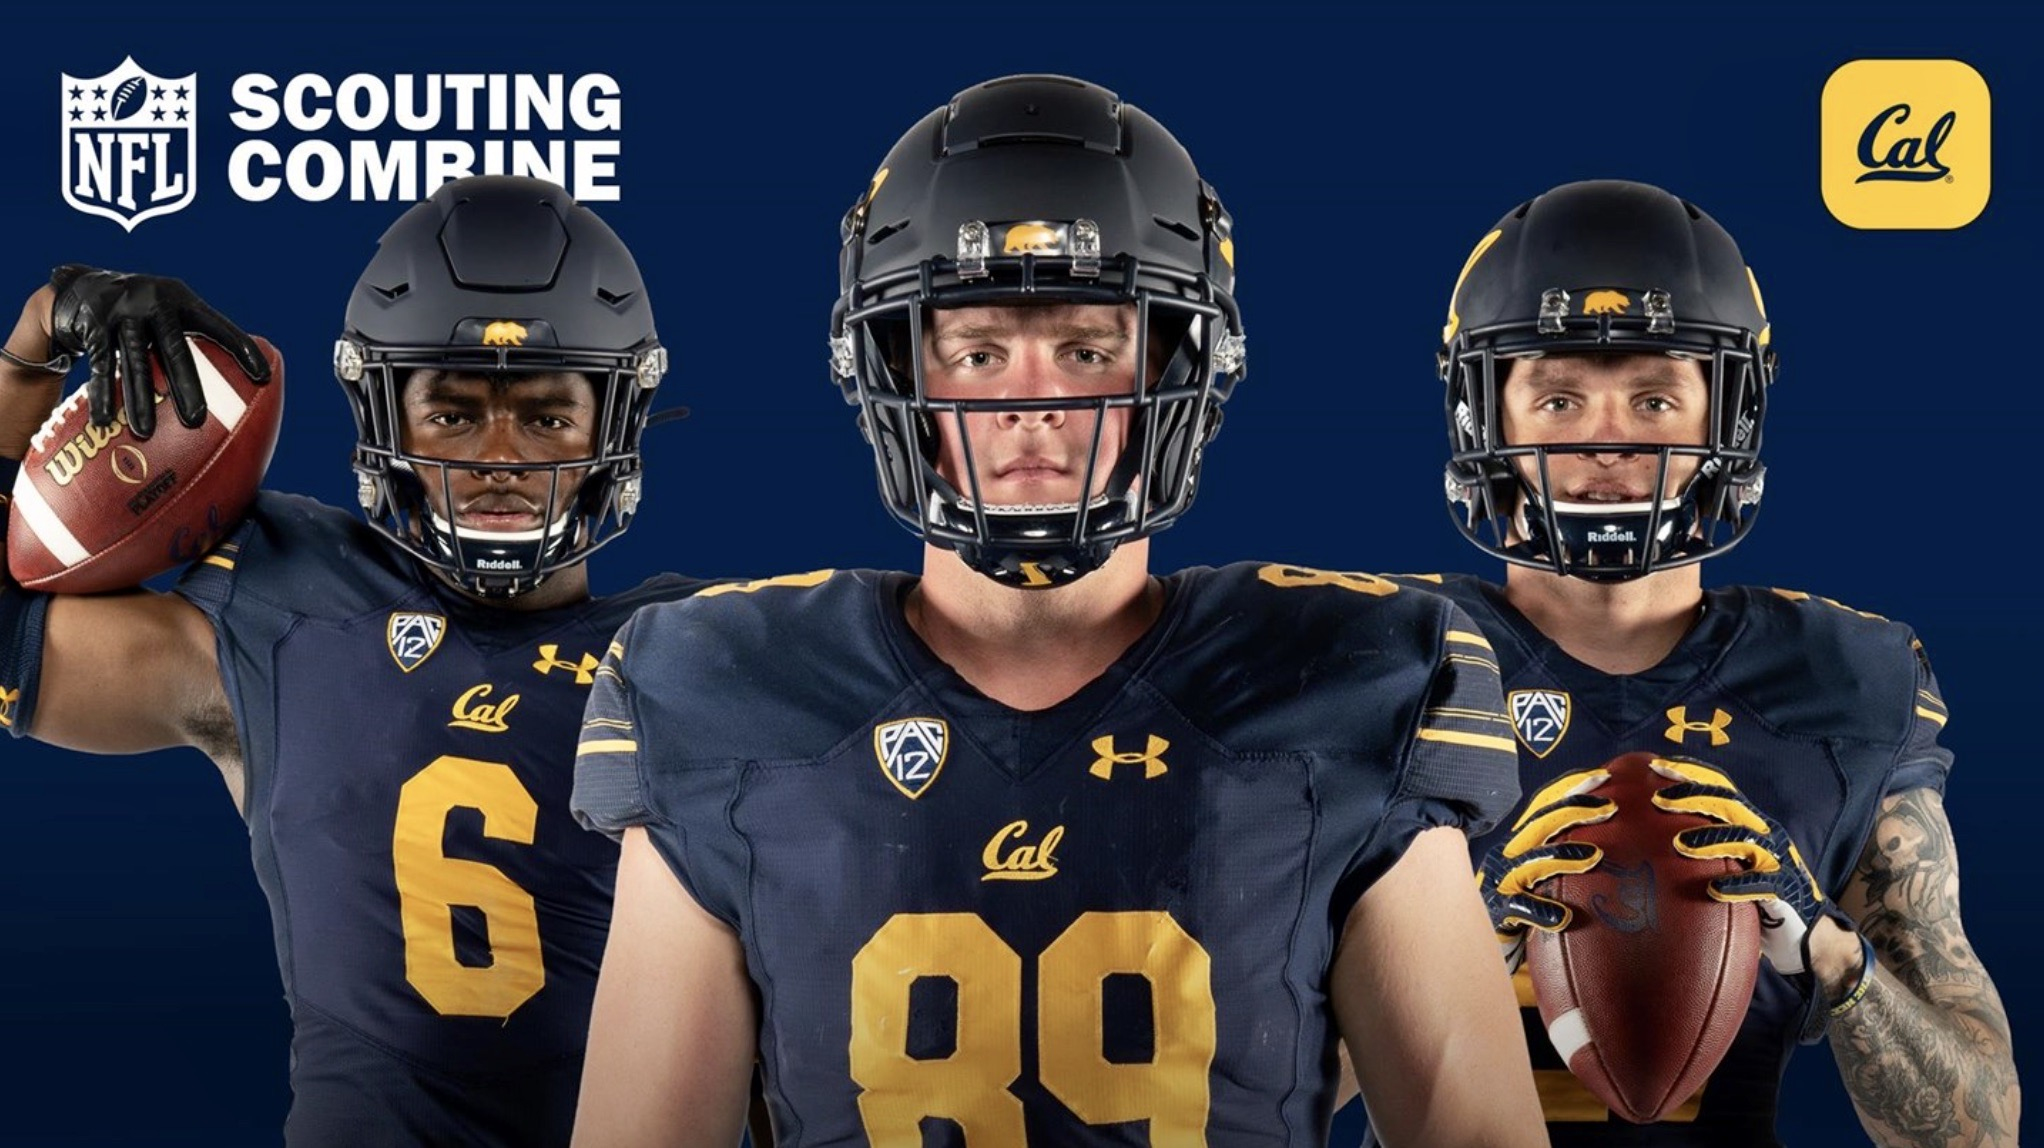 Cal trio set to participate in NFL Scouting Combine